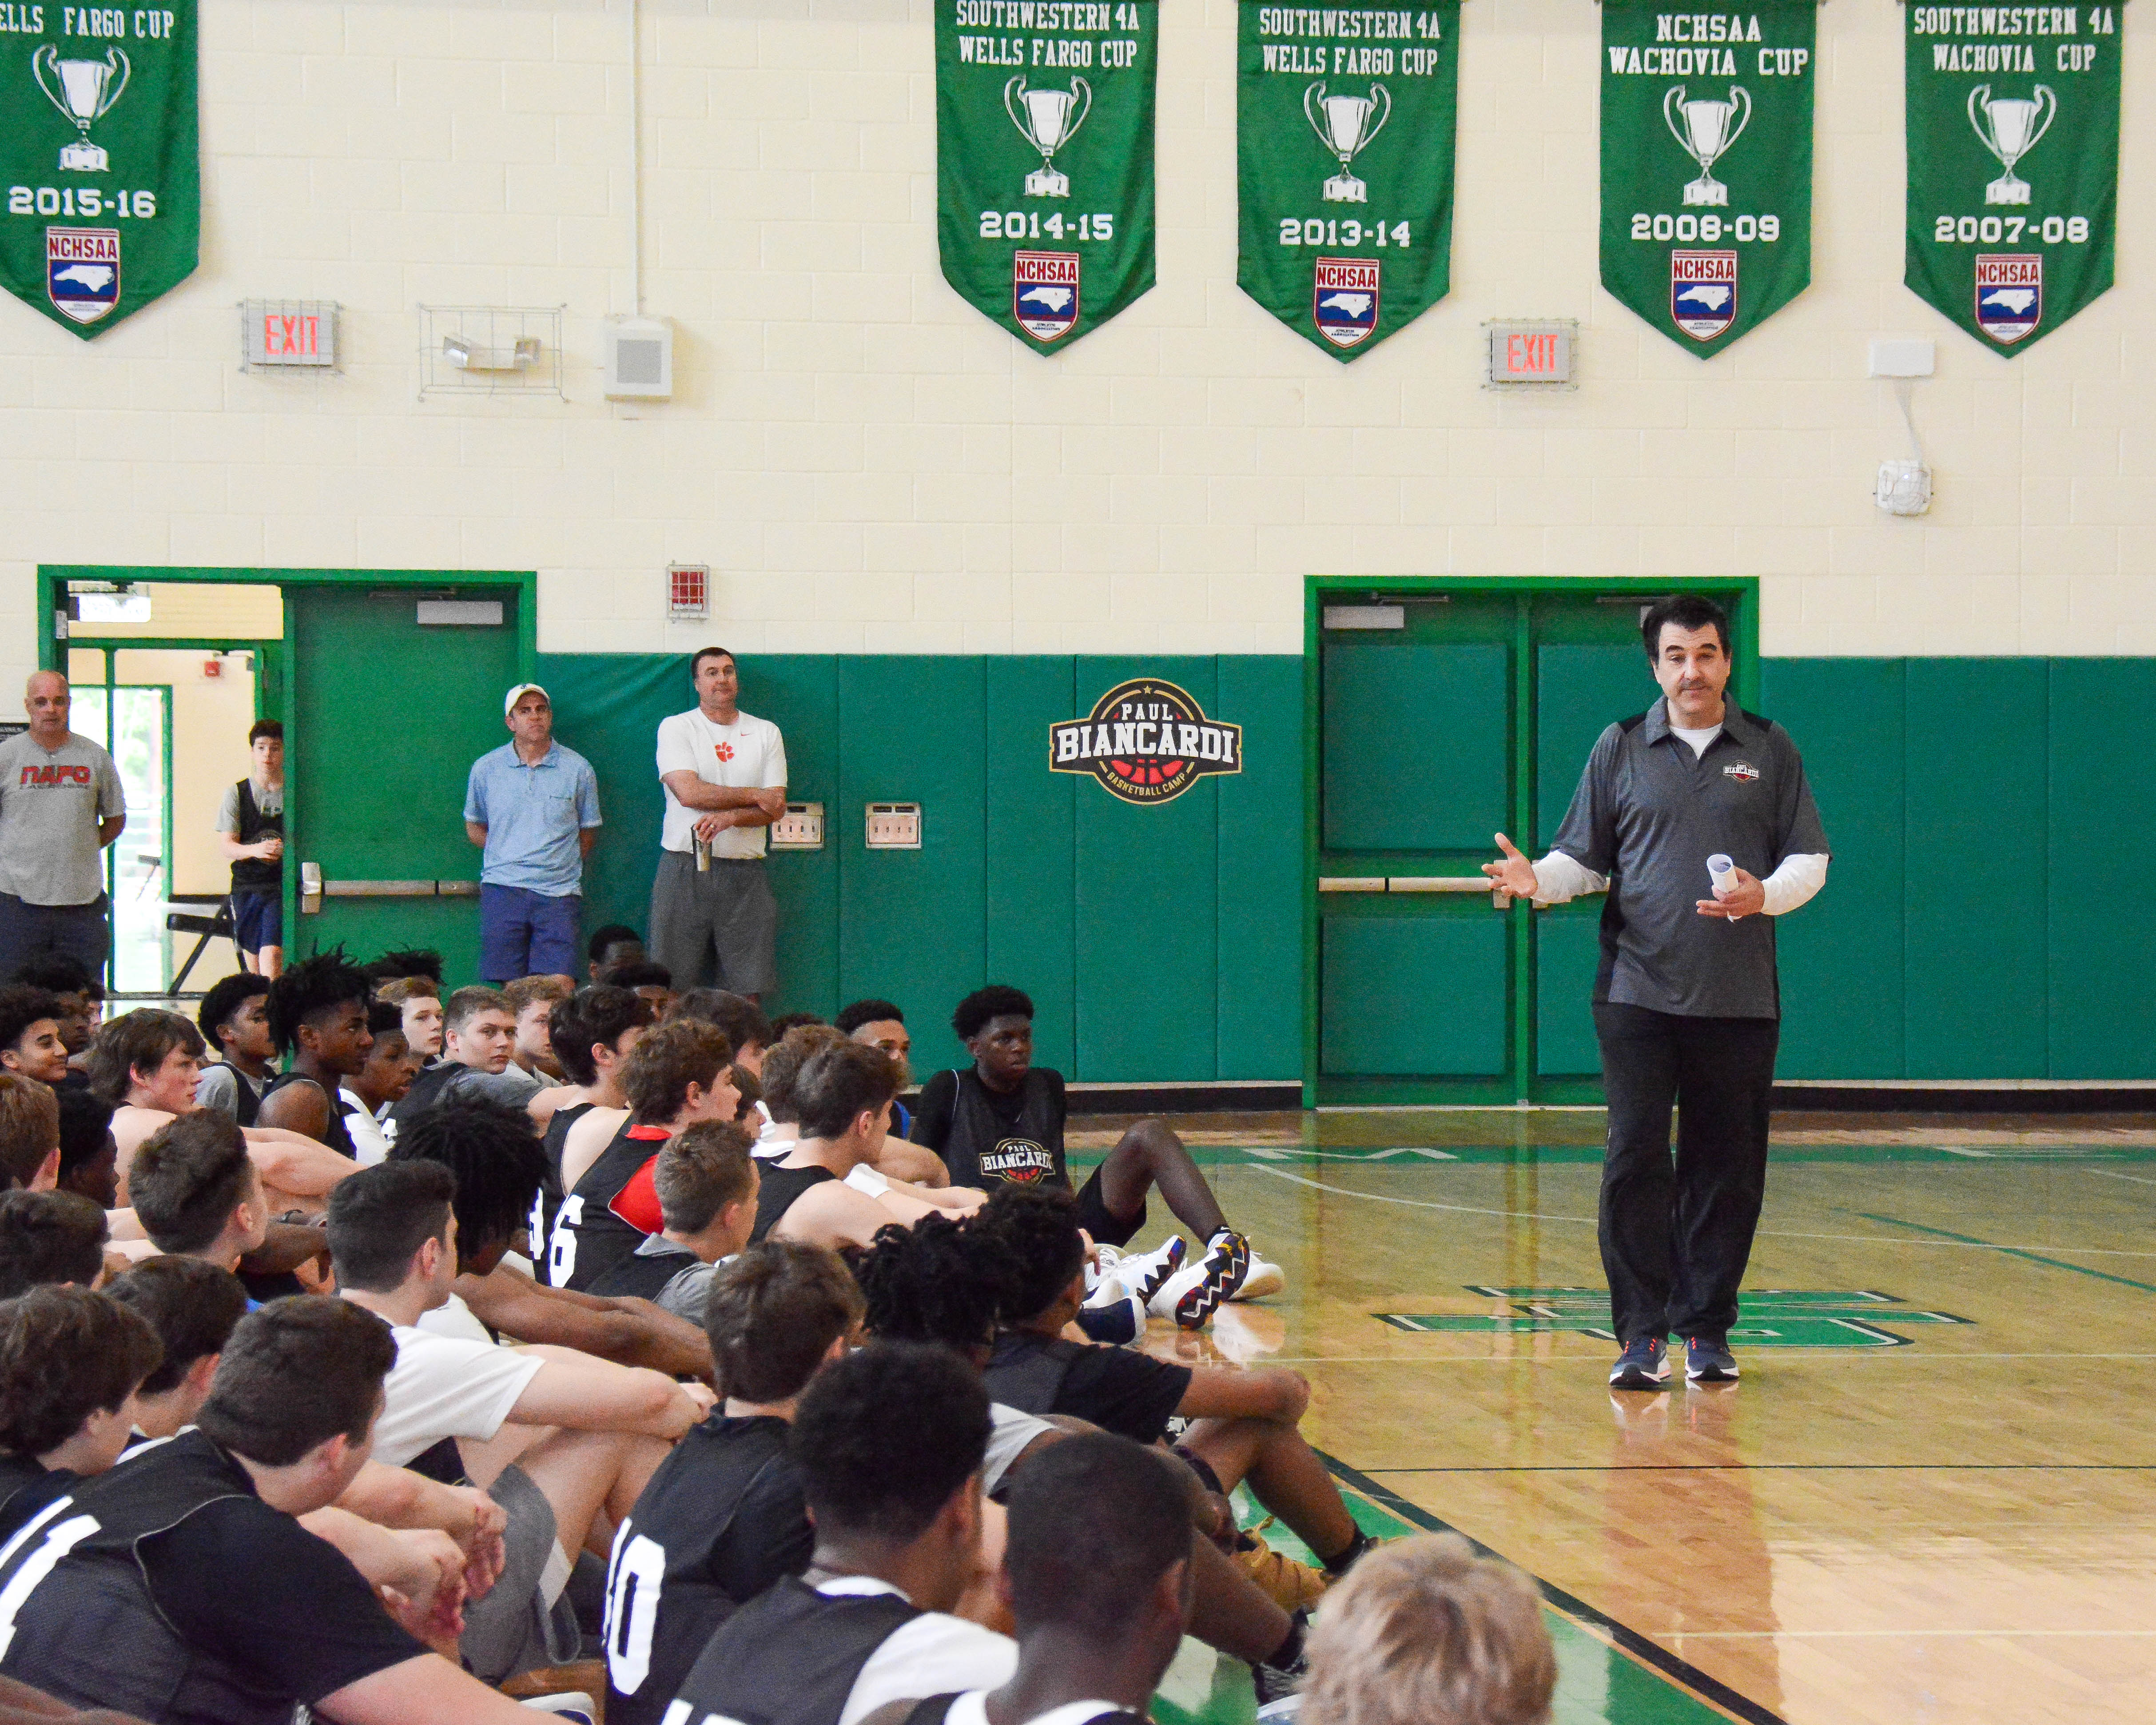 Paul Biancardi Basketball Camp | powered by Pro Skills Basketball